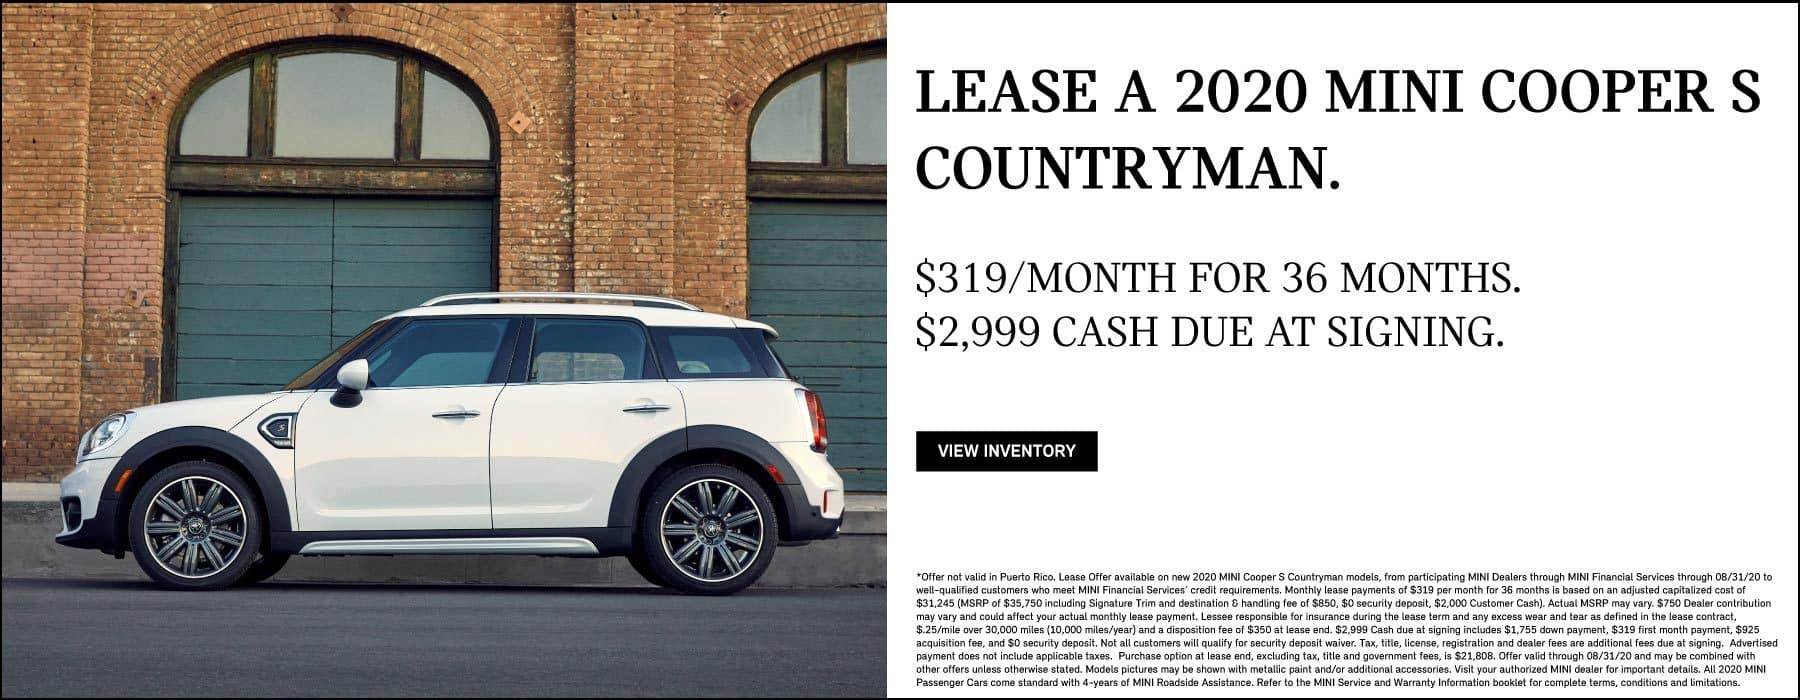 LEASE A 2020 MINI COOPER S COUNTRYMAN FOR $319 A MONTH FOR 36 MONTHS. $2,999 CASH DUE AT SIGNING. VIEW INVENTORY BUTTON. SEE DEALER FOR COMPLETE DETAILS.